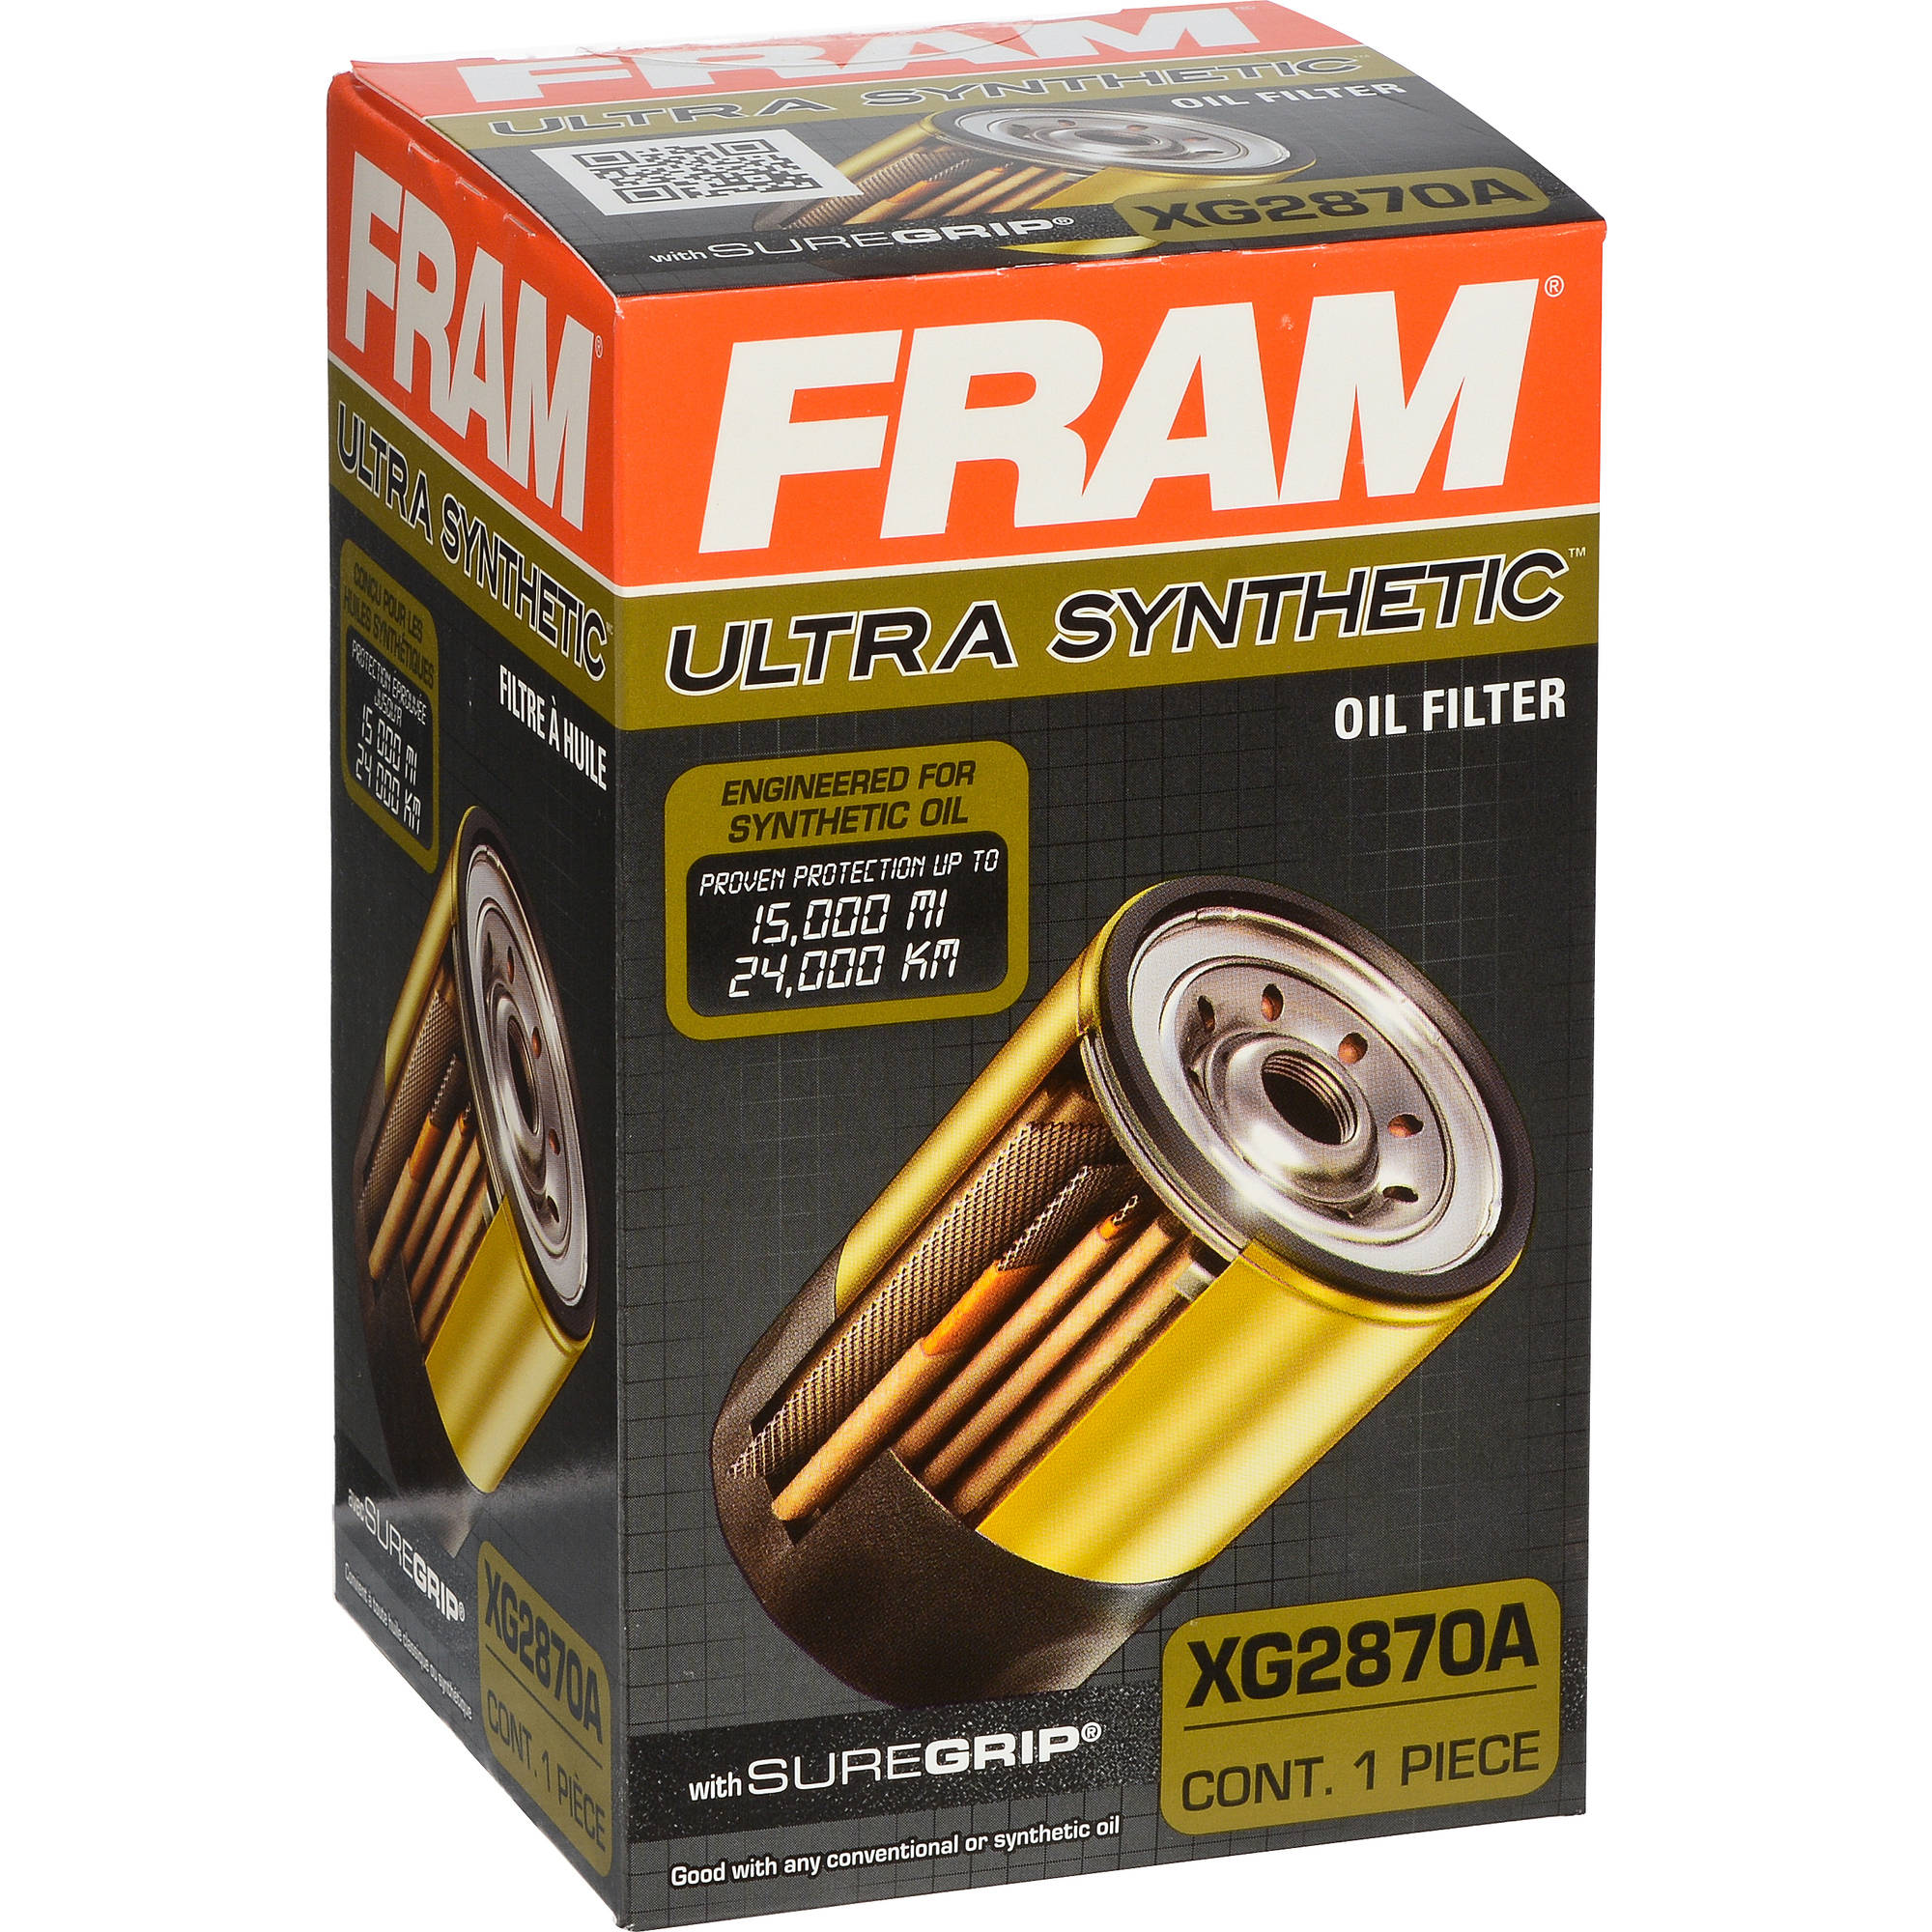 FRAM Ultra Synthetic Oil Filter, XG2870A